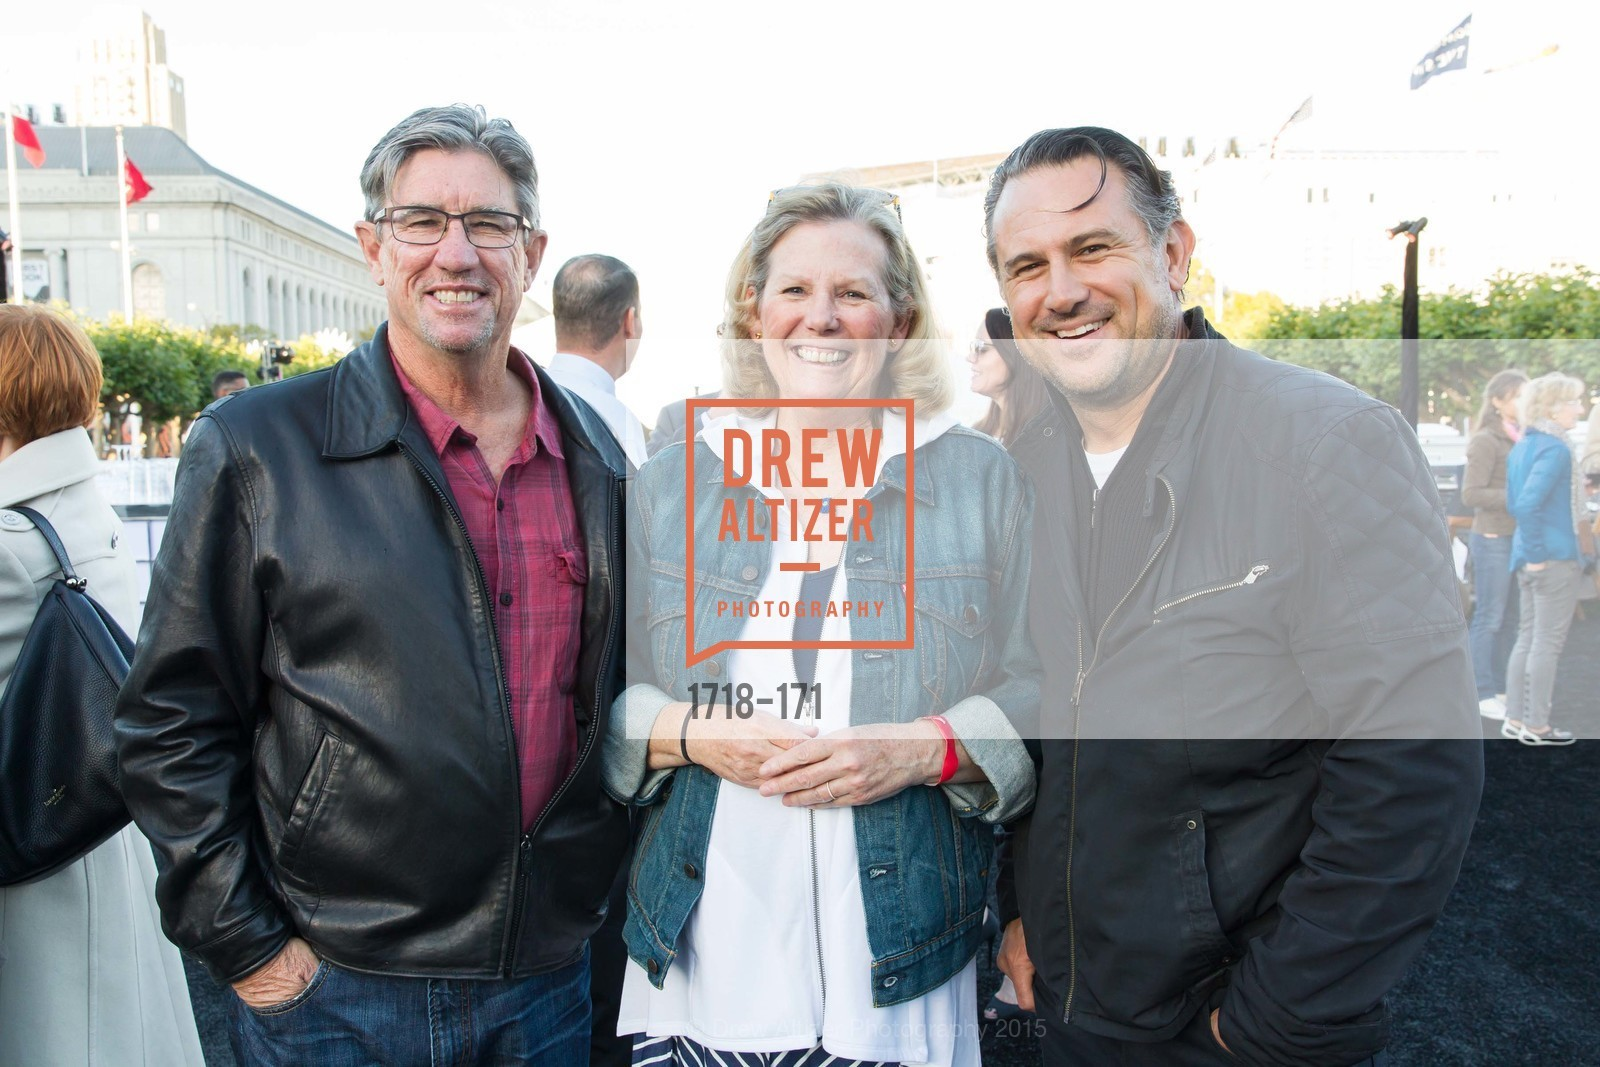 C.W. Nevius, Mary Nevius, Daniel Homsey, San Francisco City Hall Centennial Celebration, Civic Center Plaza, June 18th, 2015,Drew Altizer, Drew Altizer Photography, full-service agency, private events, San Francisco photographer, photographer california